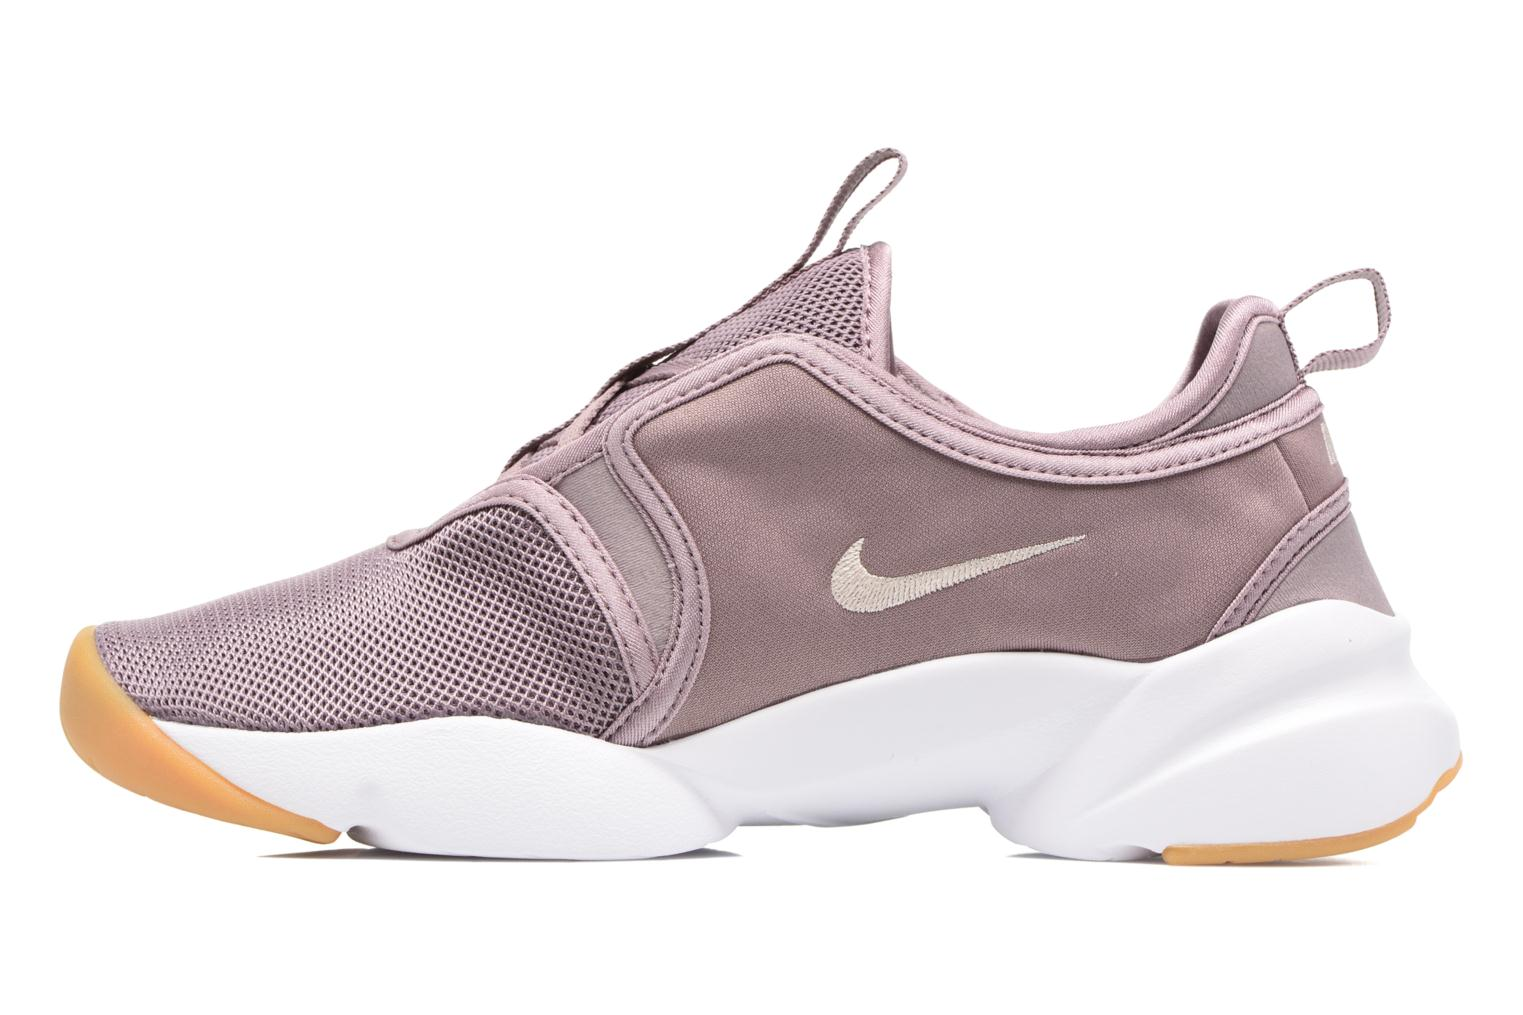 W Nike Loden Taupe Grey/Taupe Grey-Silt Red